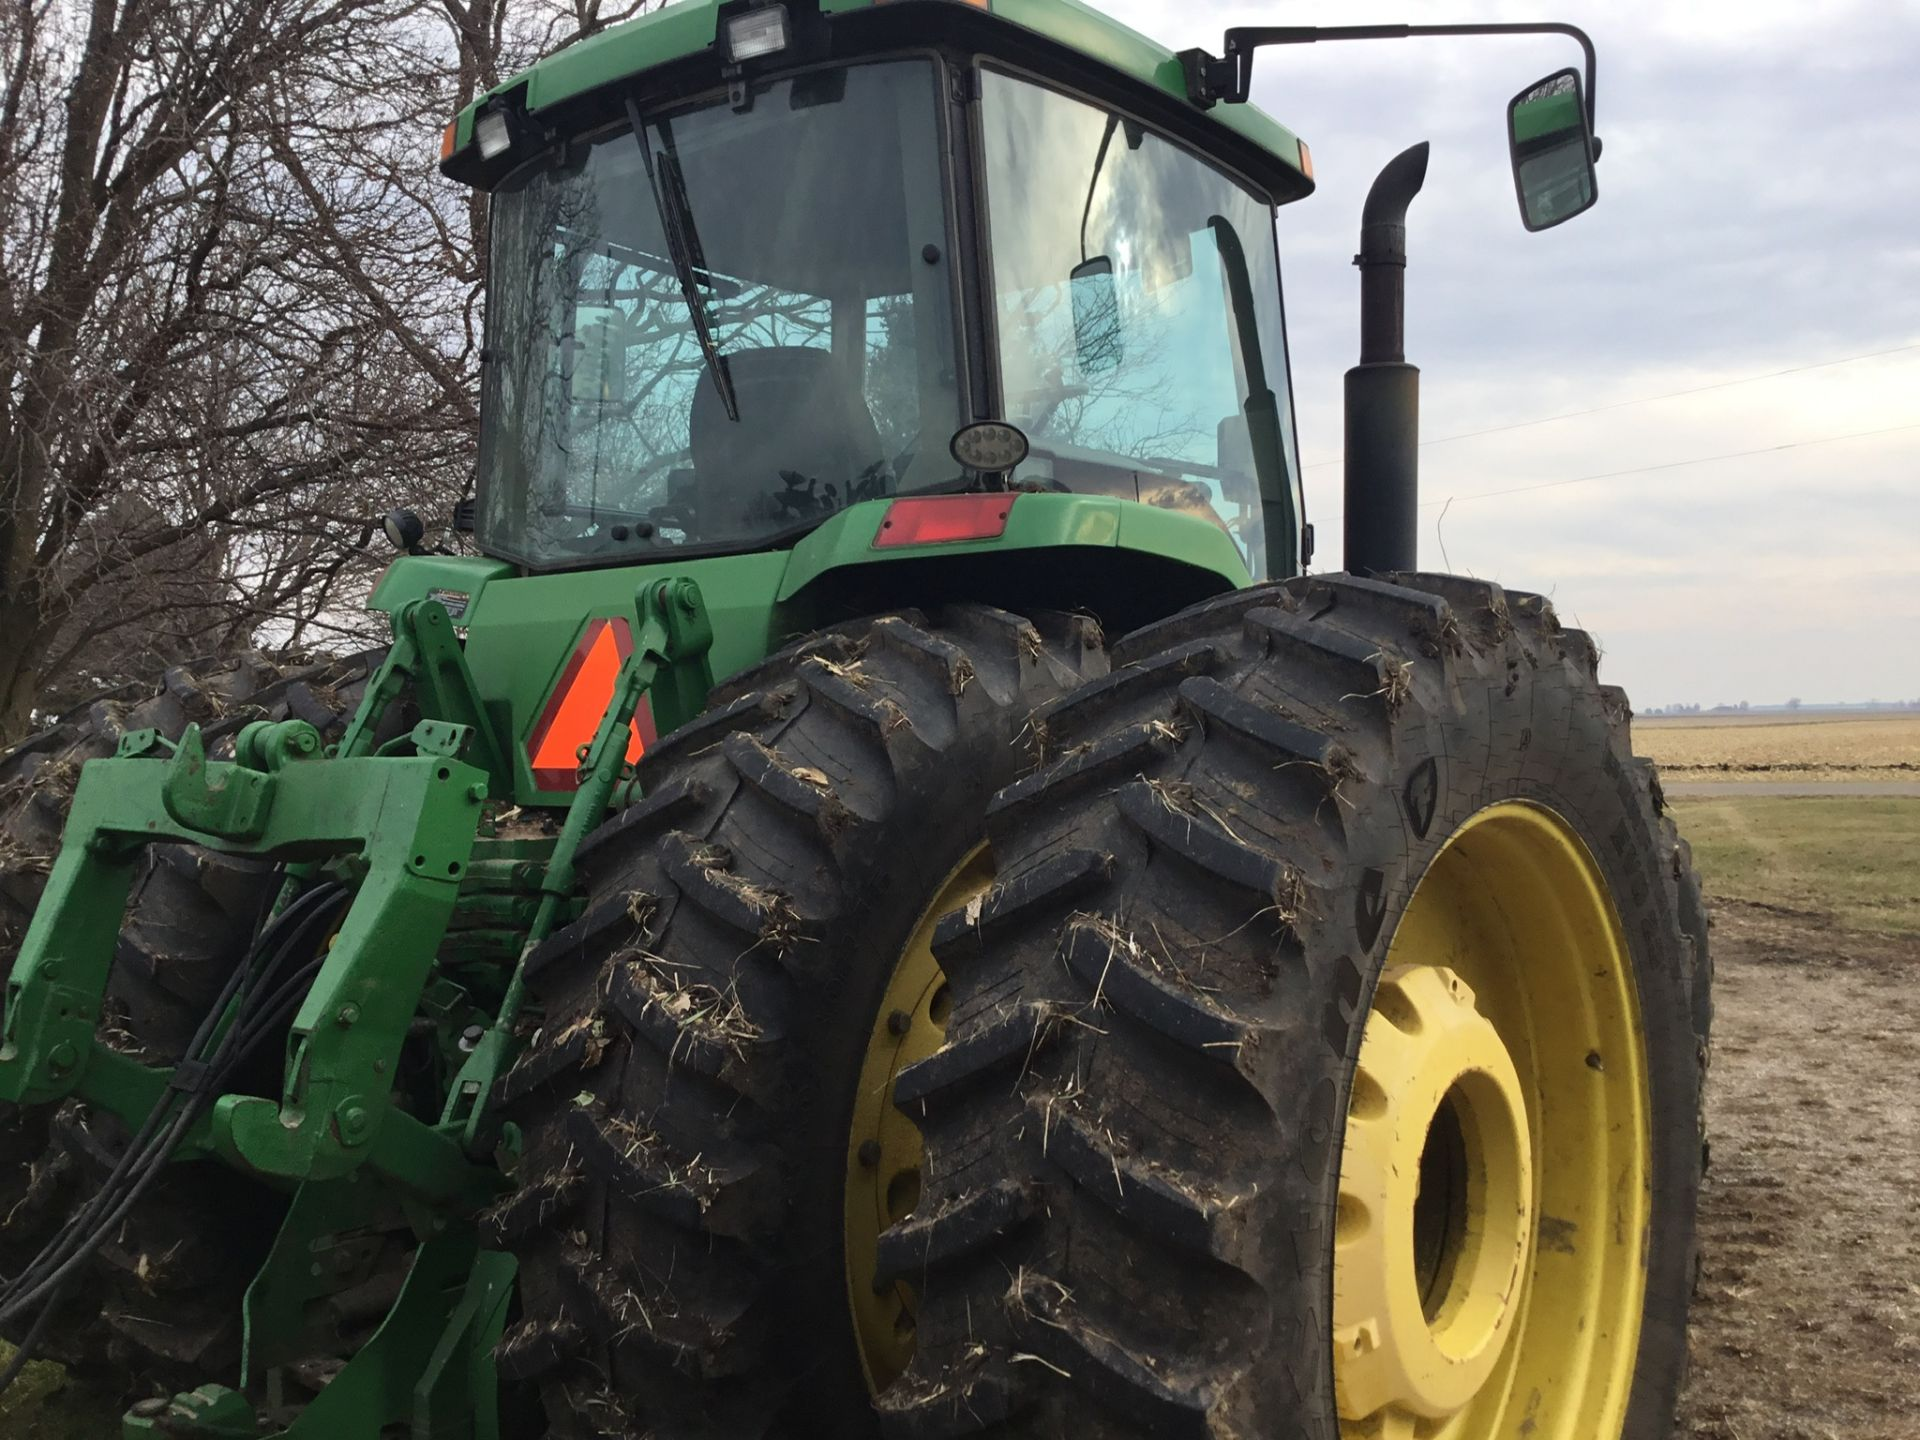 1997 John Deere 8300 MFWD, Power Shift, 3 Hydraulic Remotes, 3 Pt., Quick Hitch, PTO, Green Star - Image 22 of 25